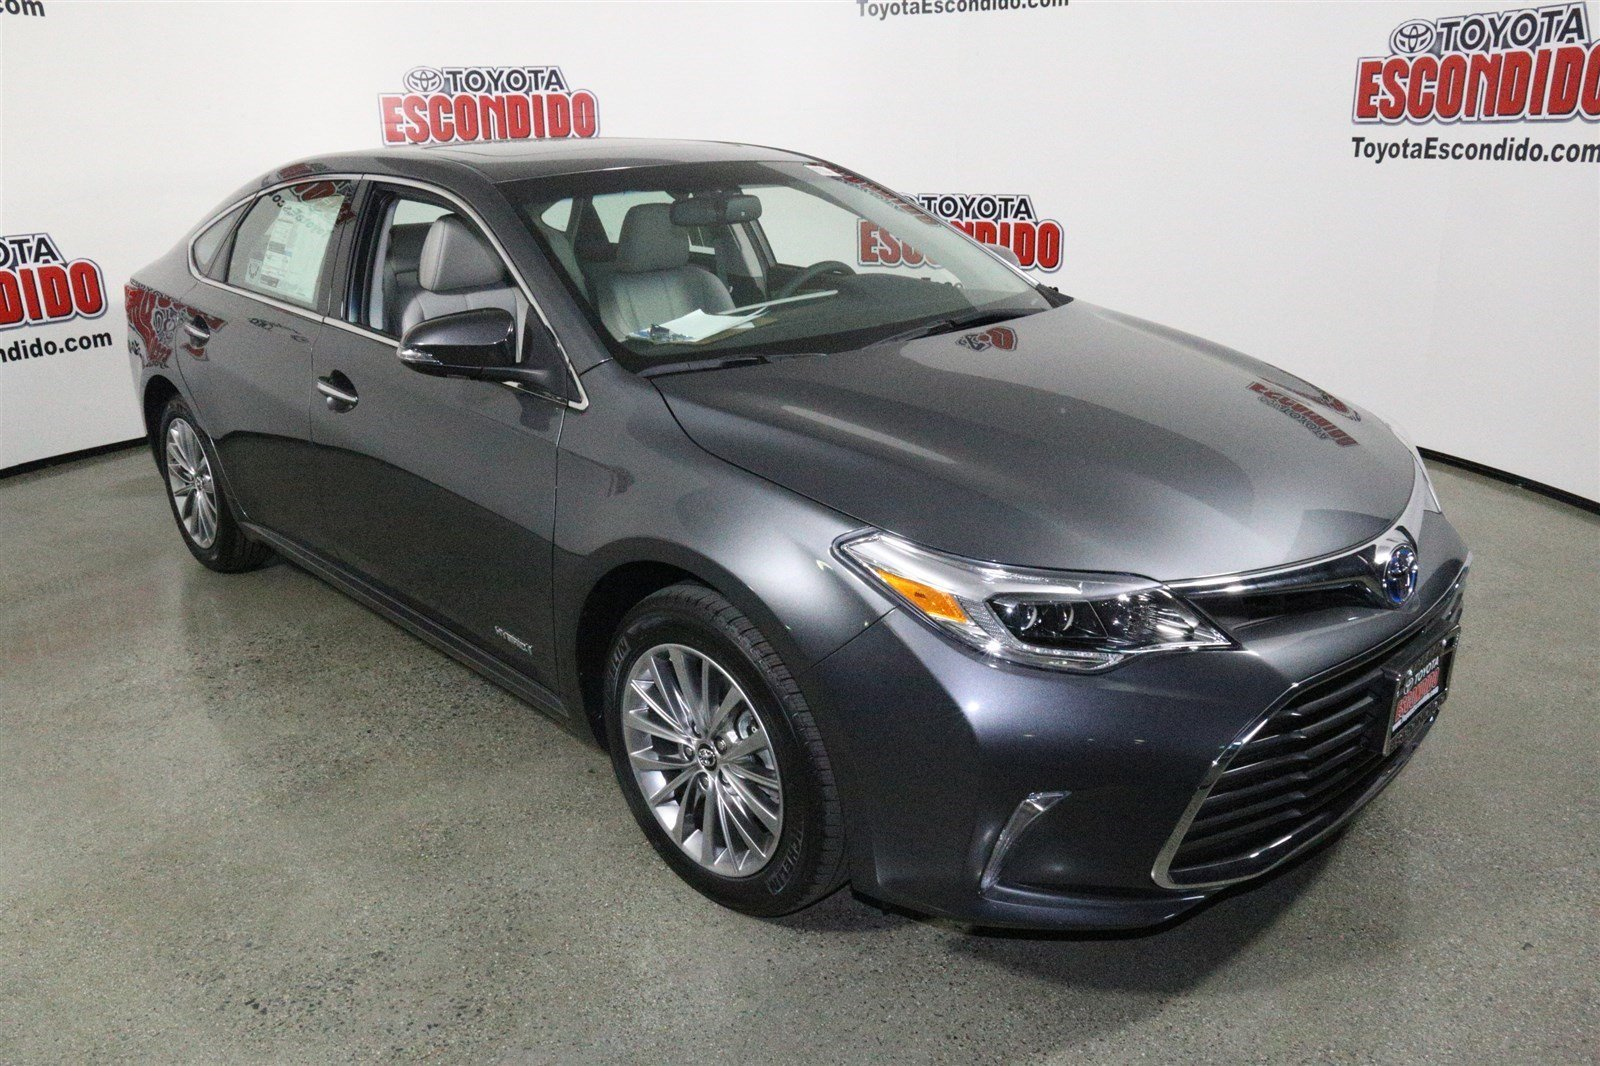 new 2017 toyota avalon hybrid limited 4dr car in escondido hu057417 toyota escondido. Black Bedroom Furniture Sets. Home Design Ideas